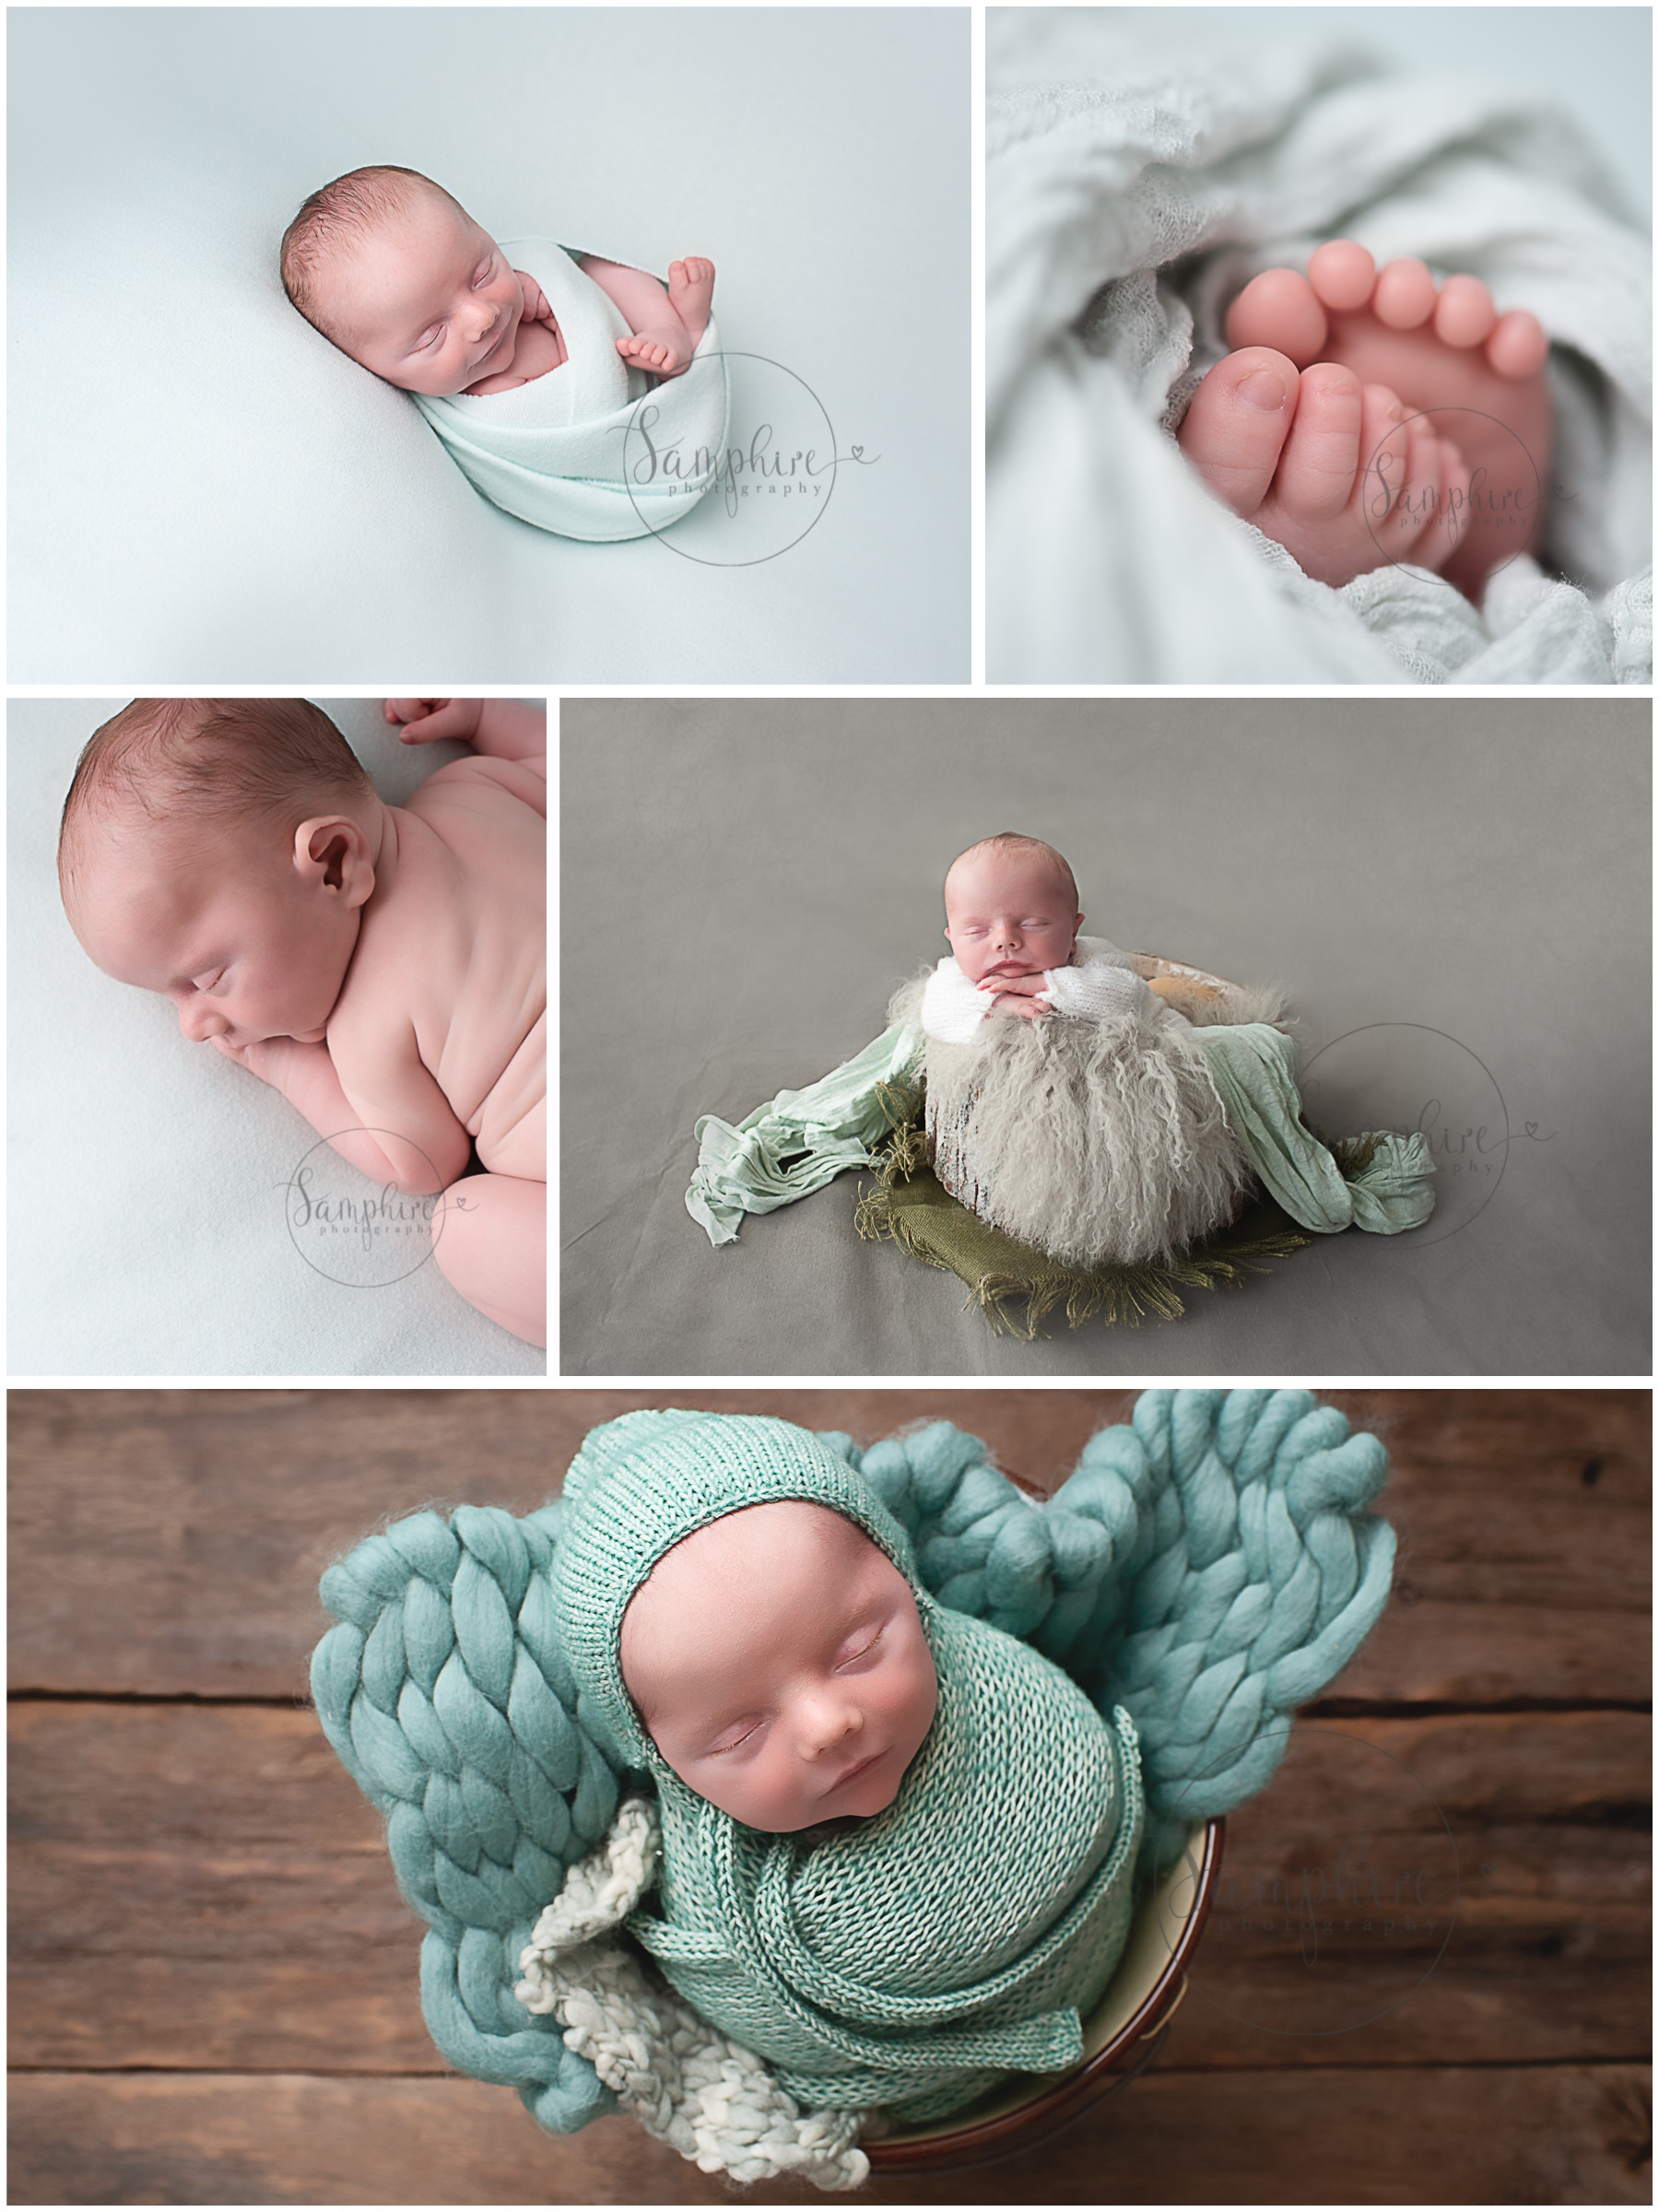 Newborn baby photographer in Sussex studio portraits boy asleep greys greens knits layers Samphire Photography